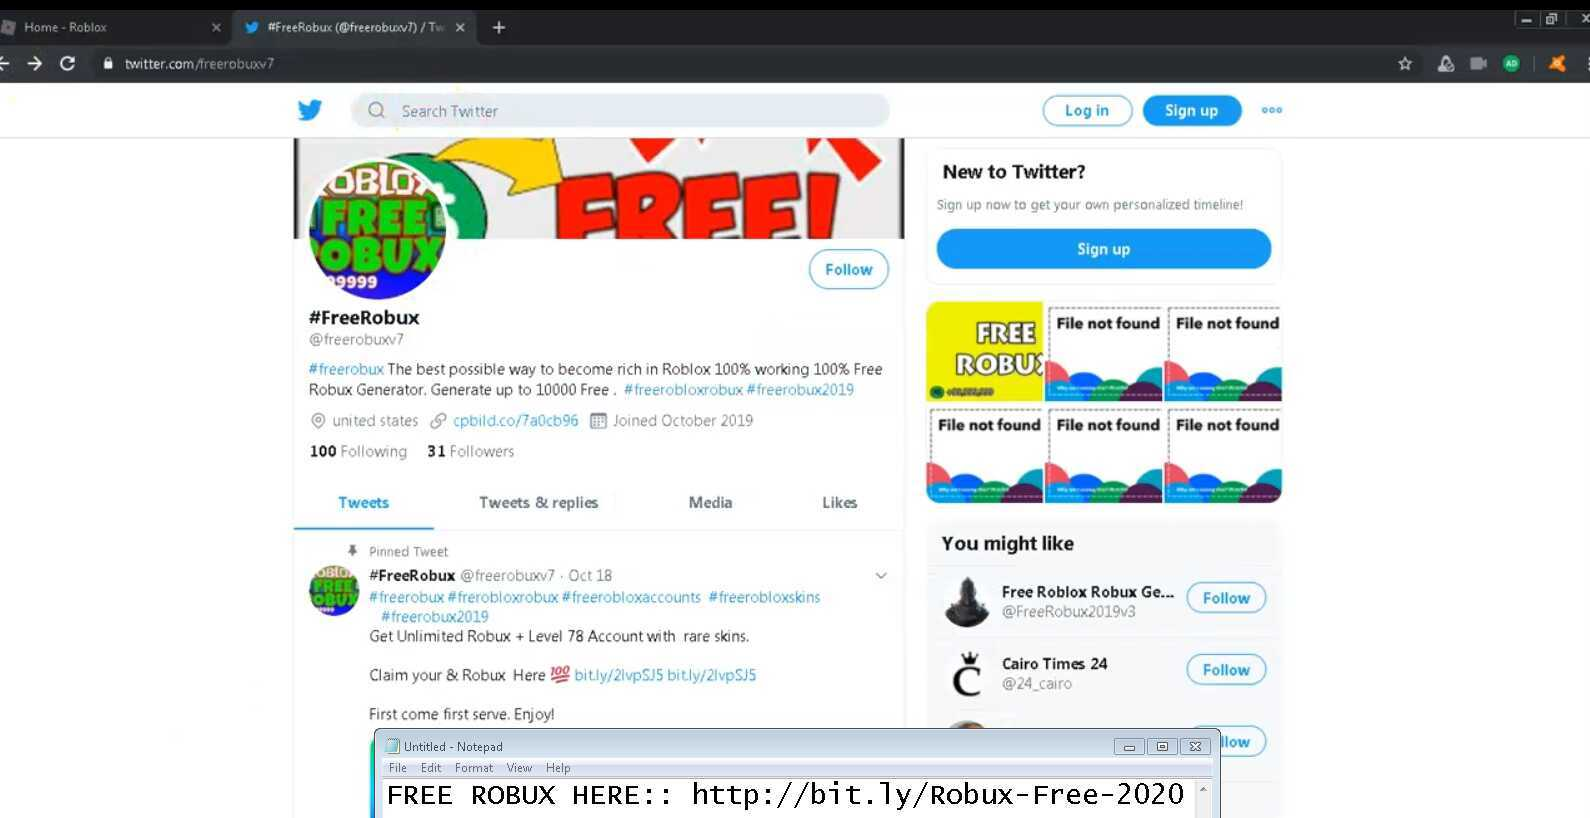 Free Robux How To Get Free Robux The Only Working Robux